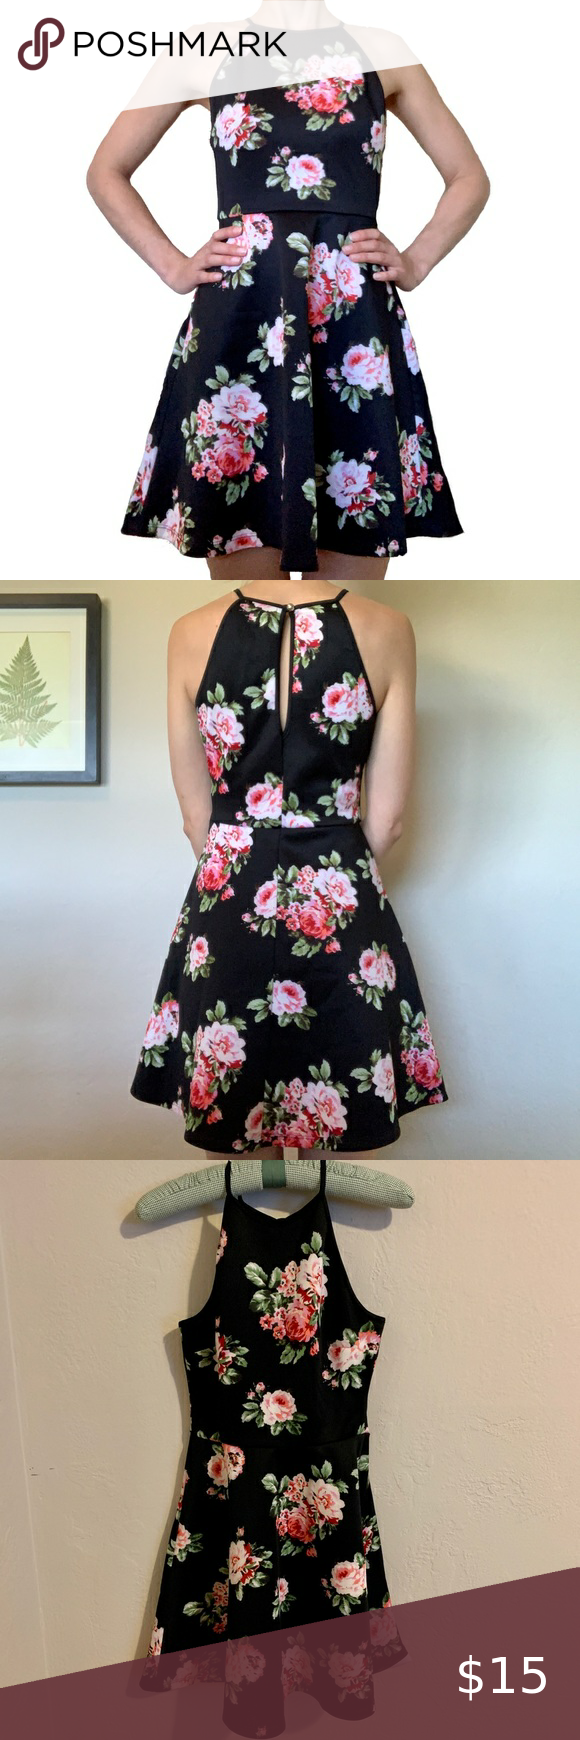 Emerald Sundae Fit And Flare Floral Dress Dresses Fit And Flare Floral Dress [ 1740 x 580 Pixel ]